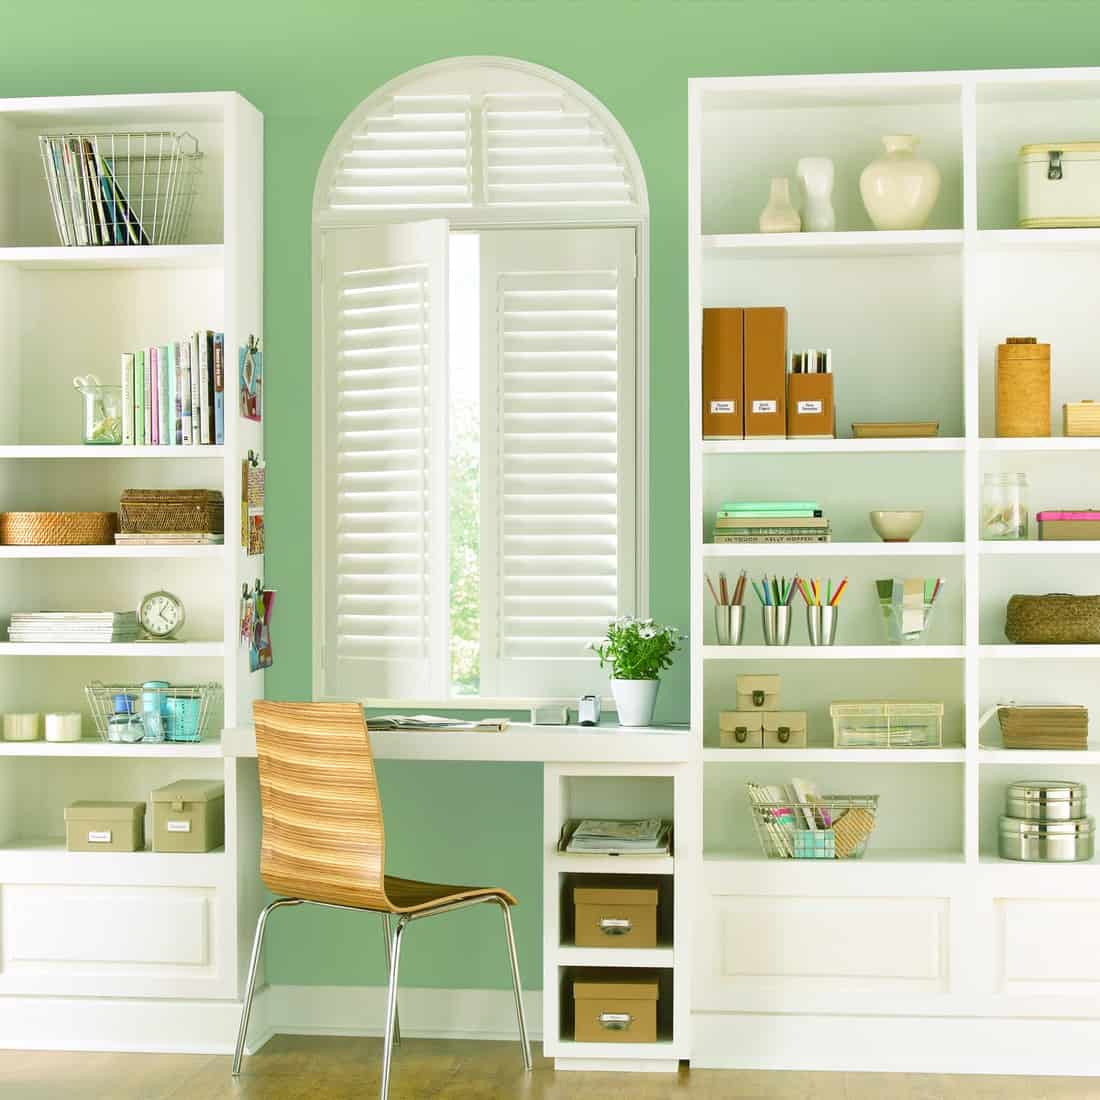 Automated Hunter Douglas Shutters for Homes near Keller, Texas (TX), including Polysatin™ Shutters for Study Spaces